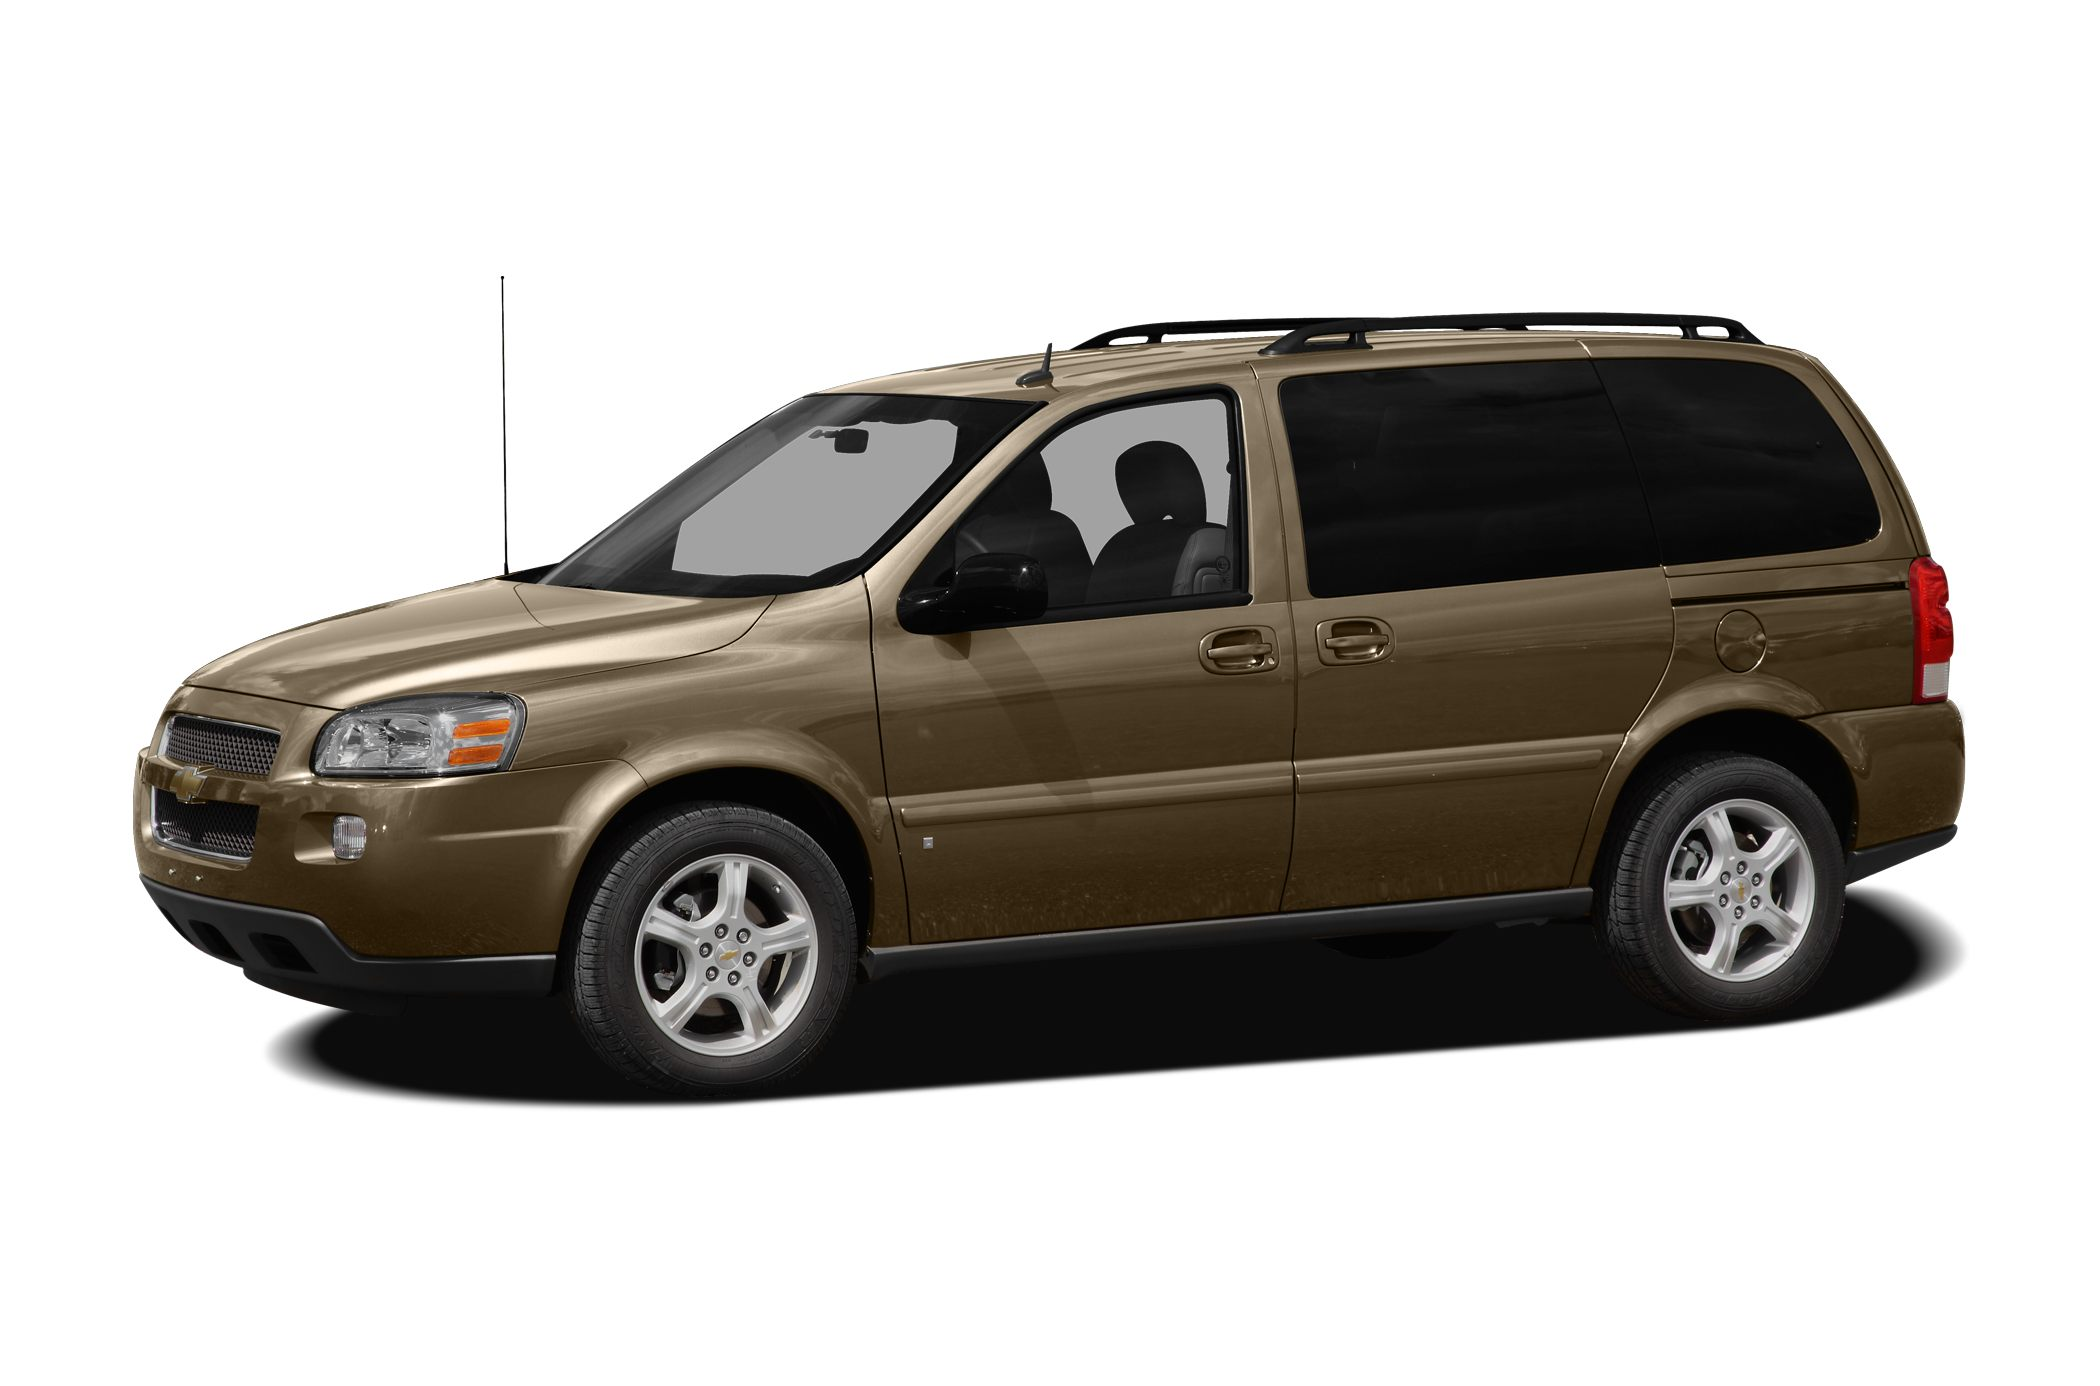 2006 Chevrolet Uplander LS Minivan for sale in Freeport for $5,487 with 141,168 miles.